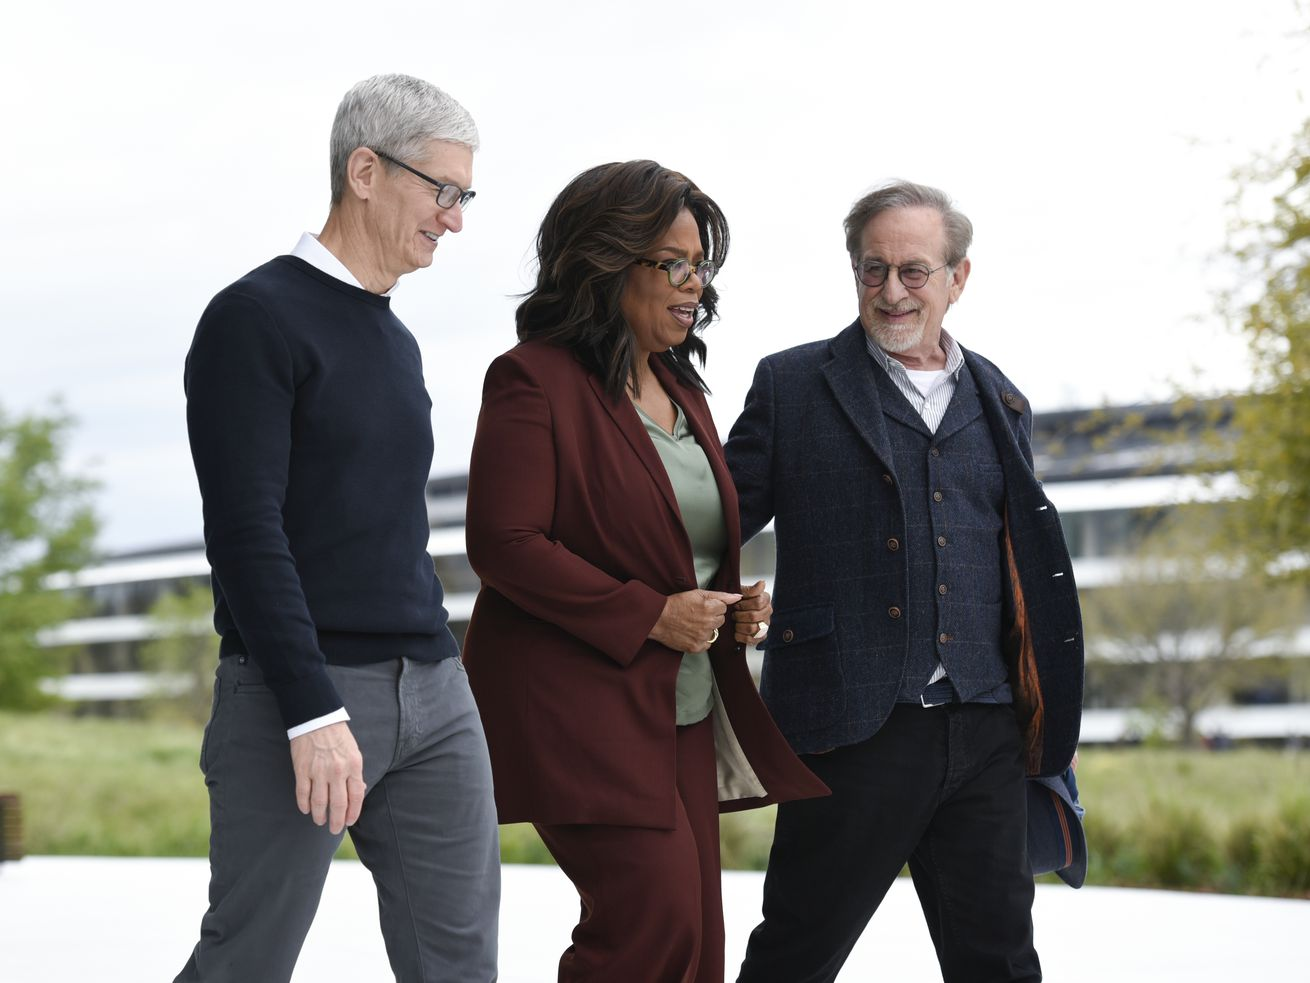 Apple CEO Tim Cook, Oprah Winfrey, and Steven Spielberg at an Apple event on March 25, 2019.